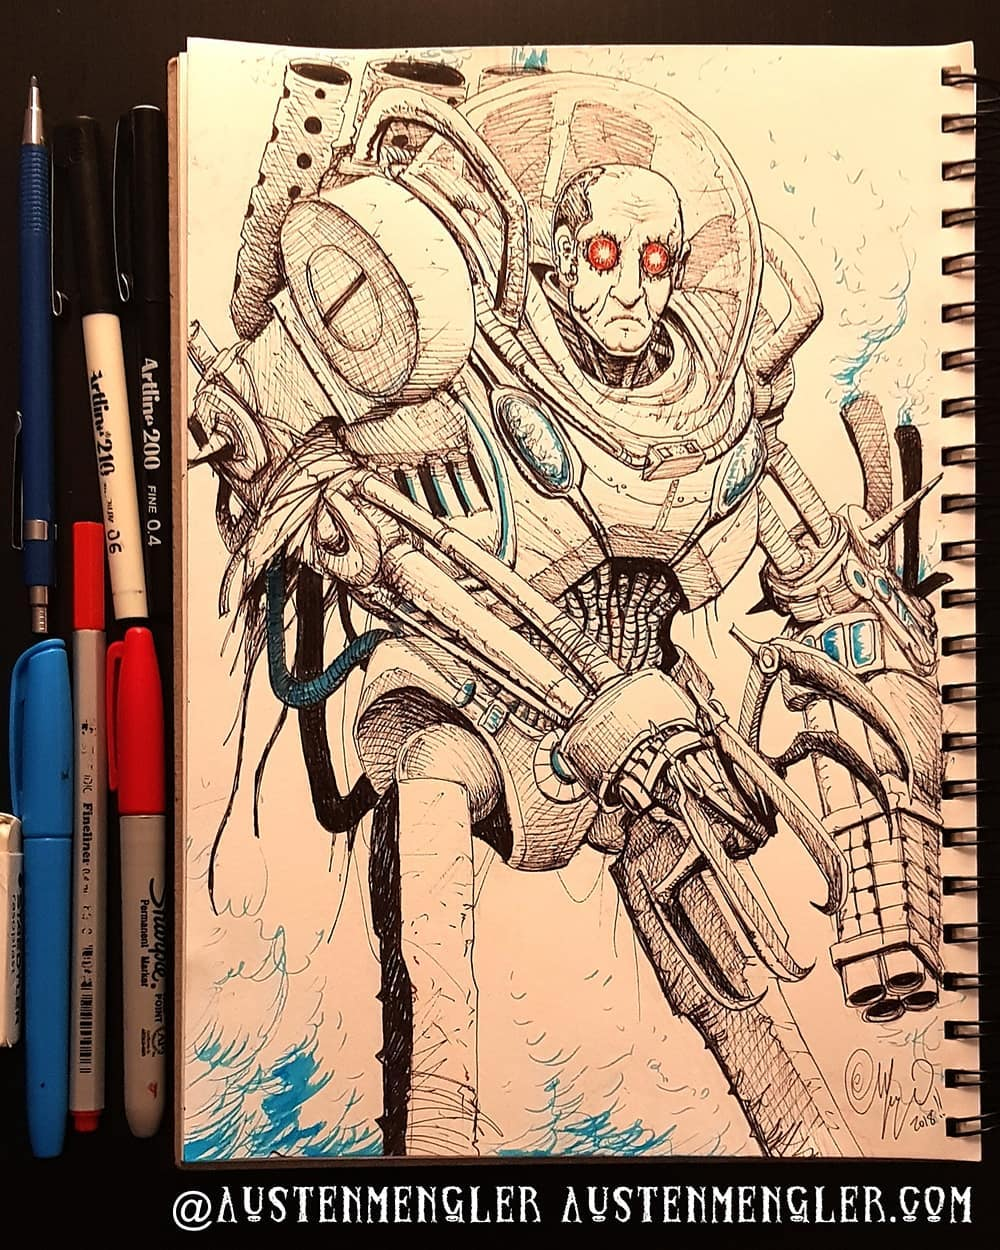 Day 12 - Mr. Freeze